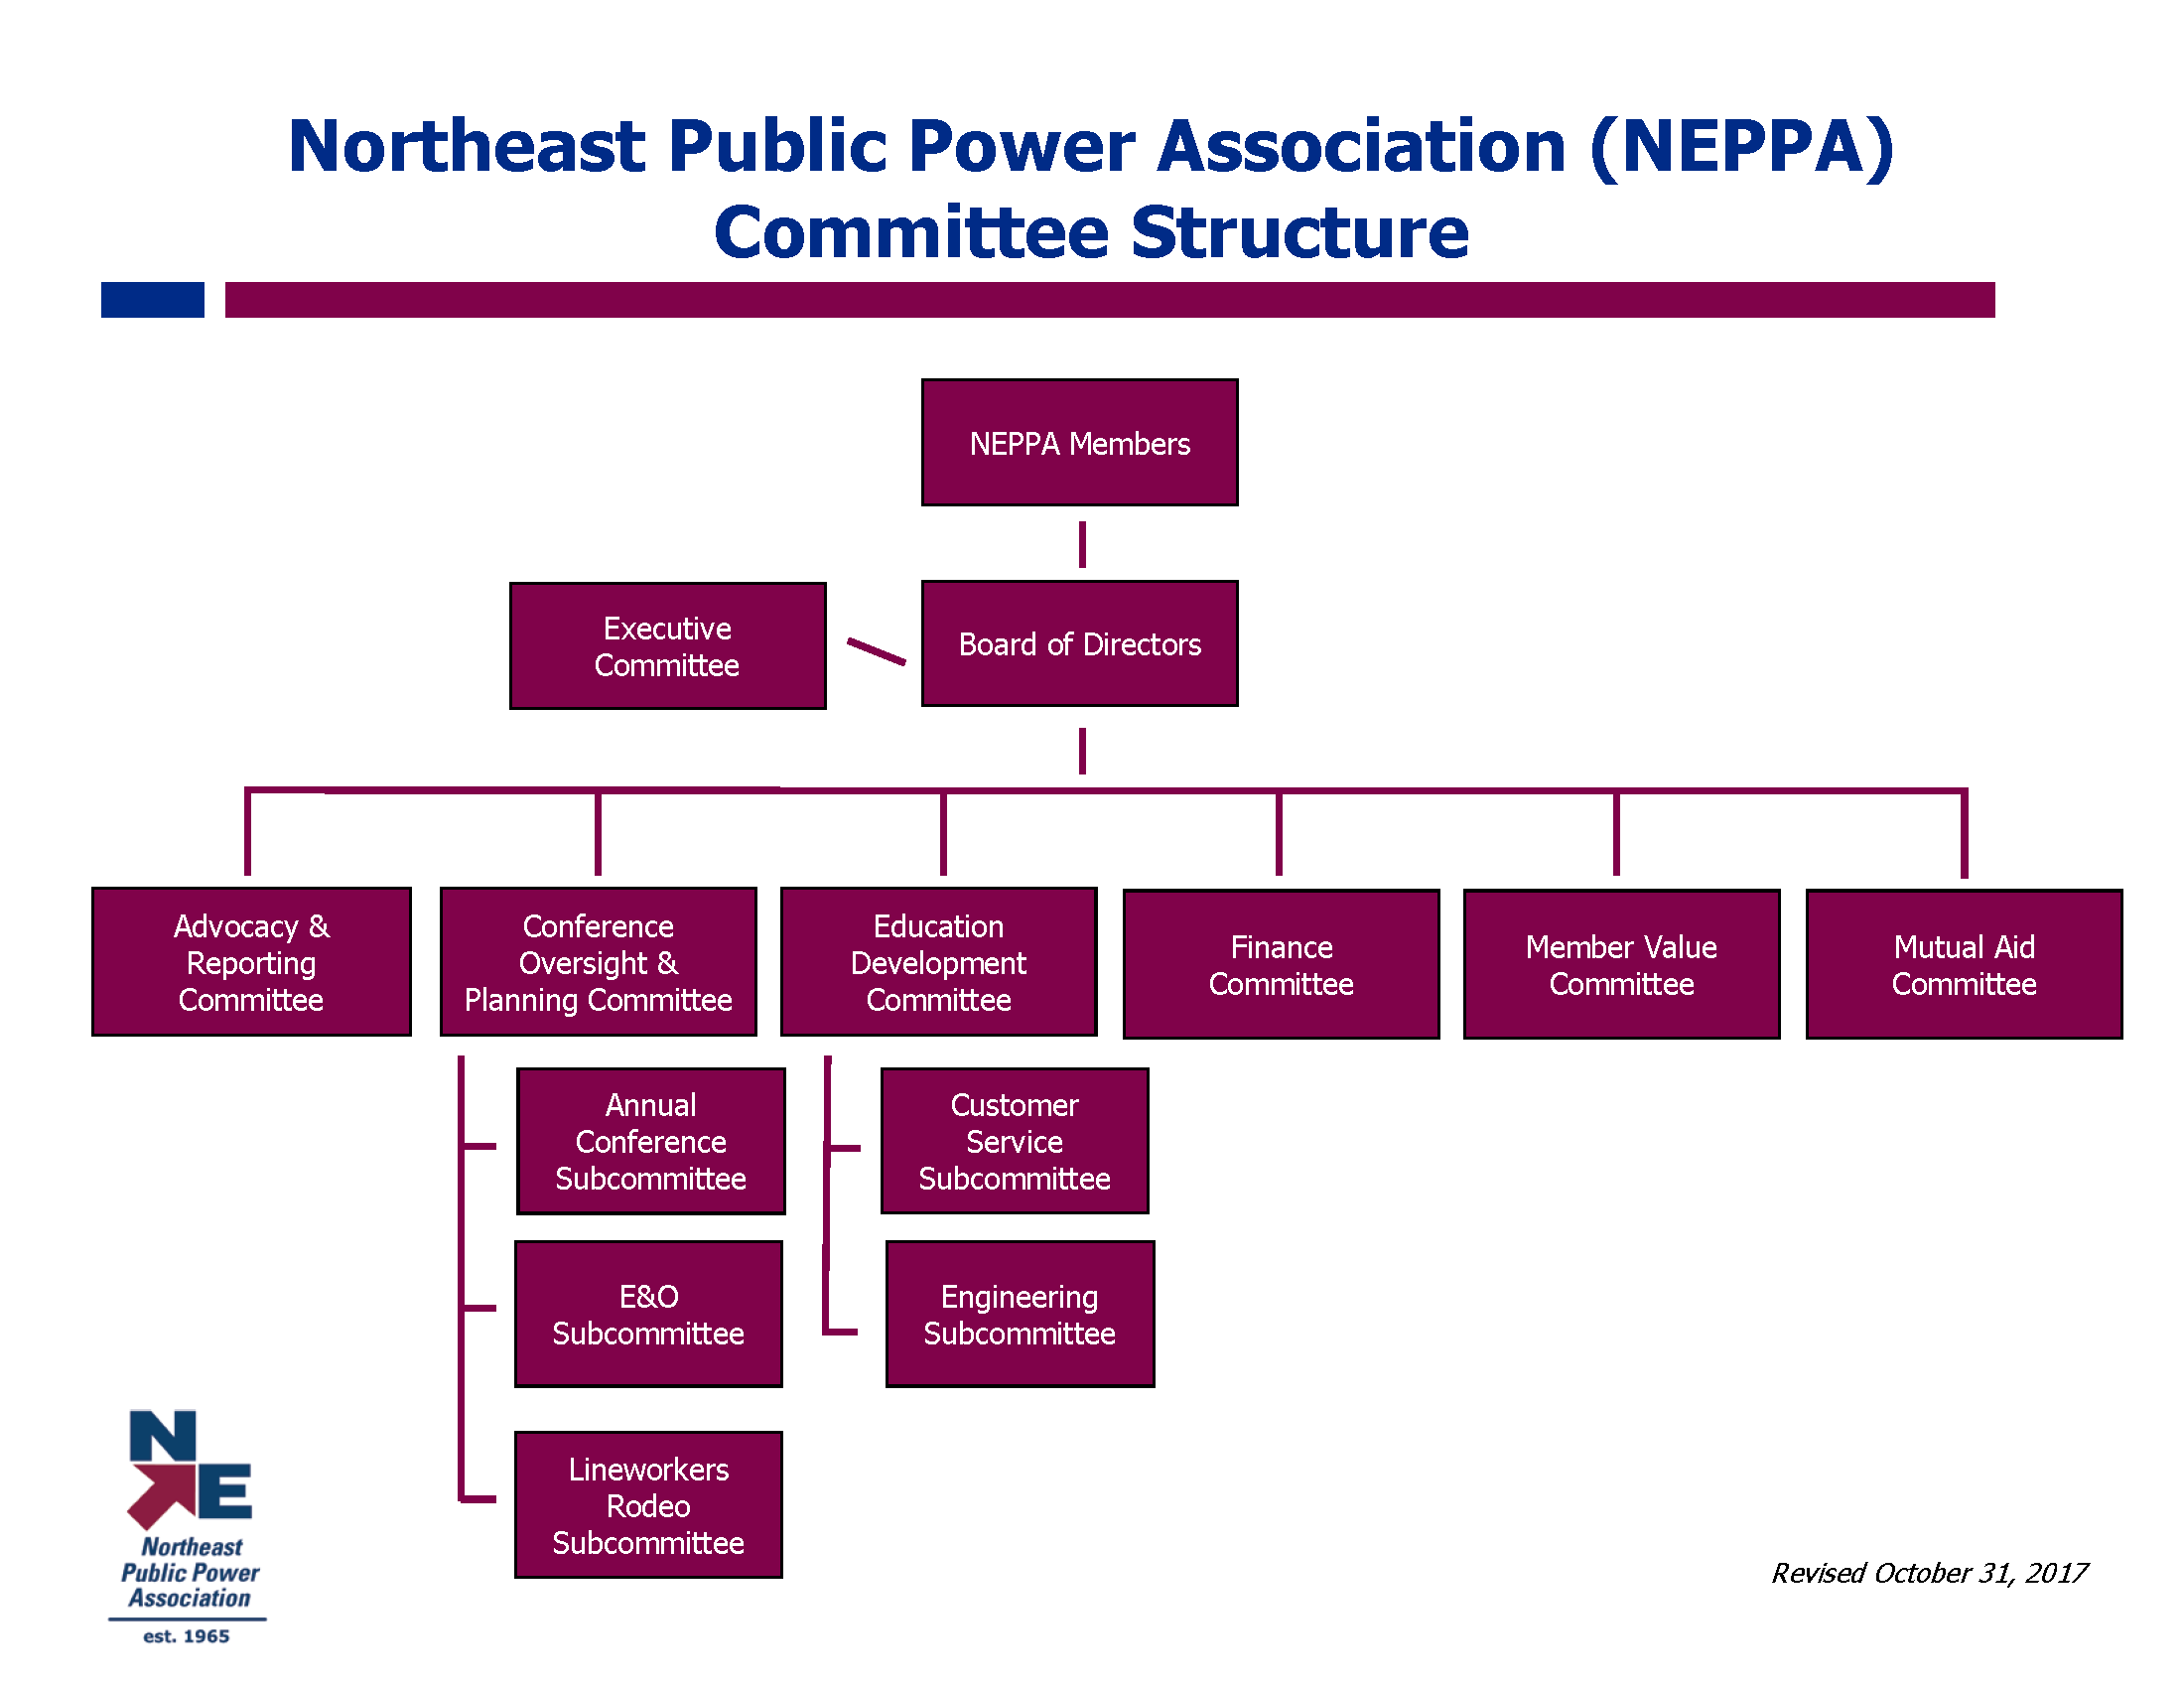 2017.10.31 NEPPA Committee Structure